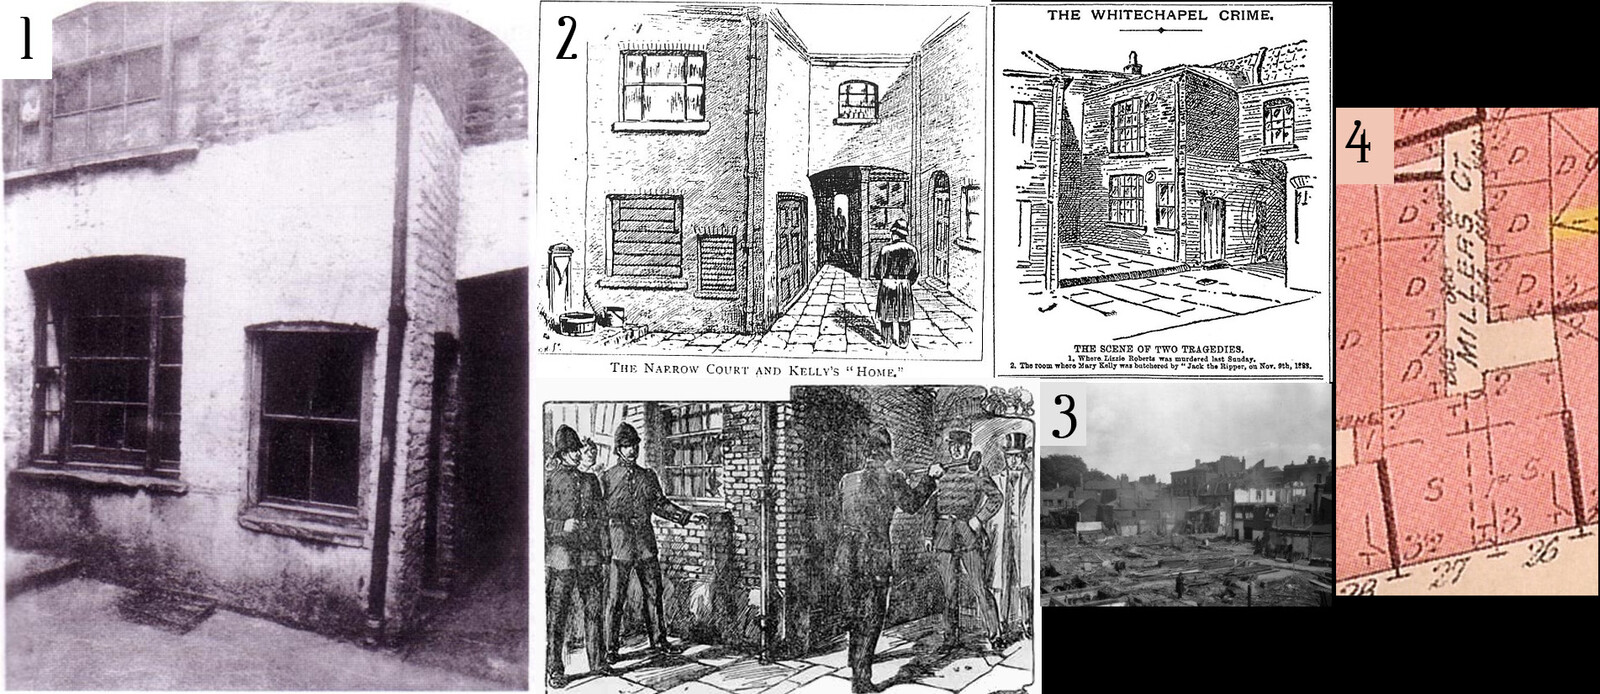 1. The only photo of Jack the Ripper's crime scene. 2. Several contemporary sketches of the scene. 3. The only other photo - of its demolition. 4. The fire insurance map I could use to plan the dimensions alongside the photo.